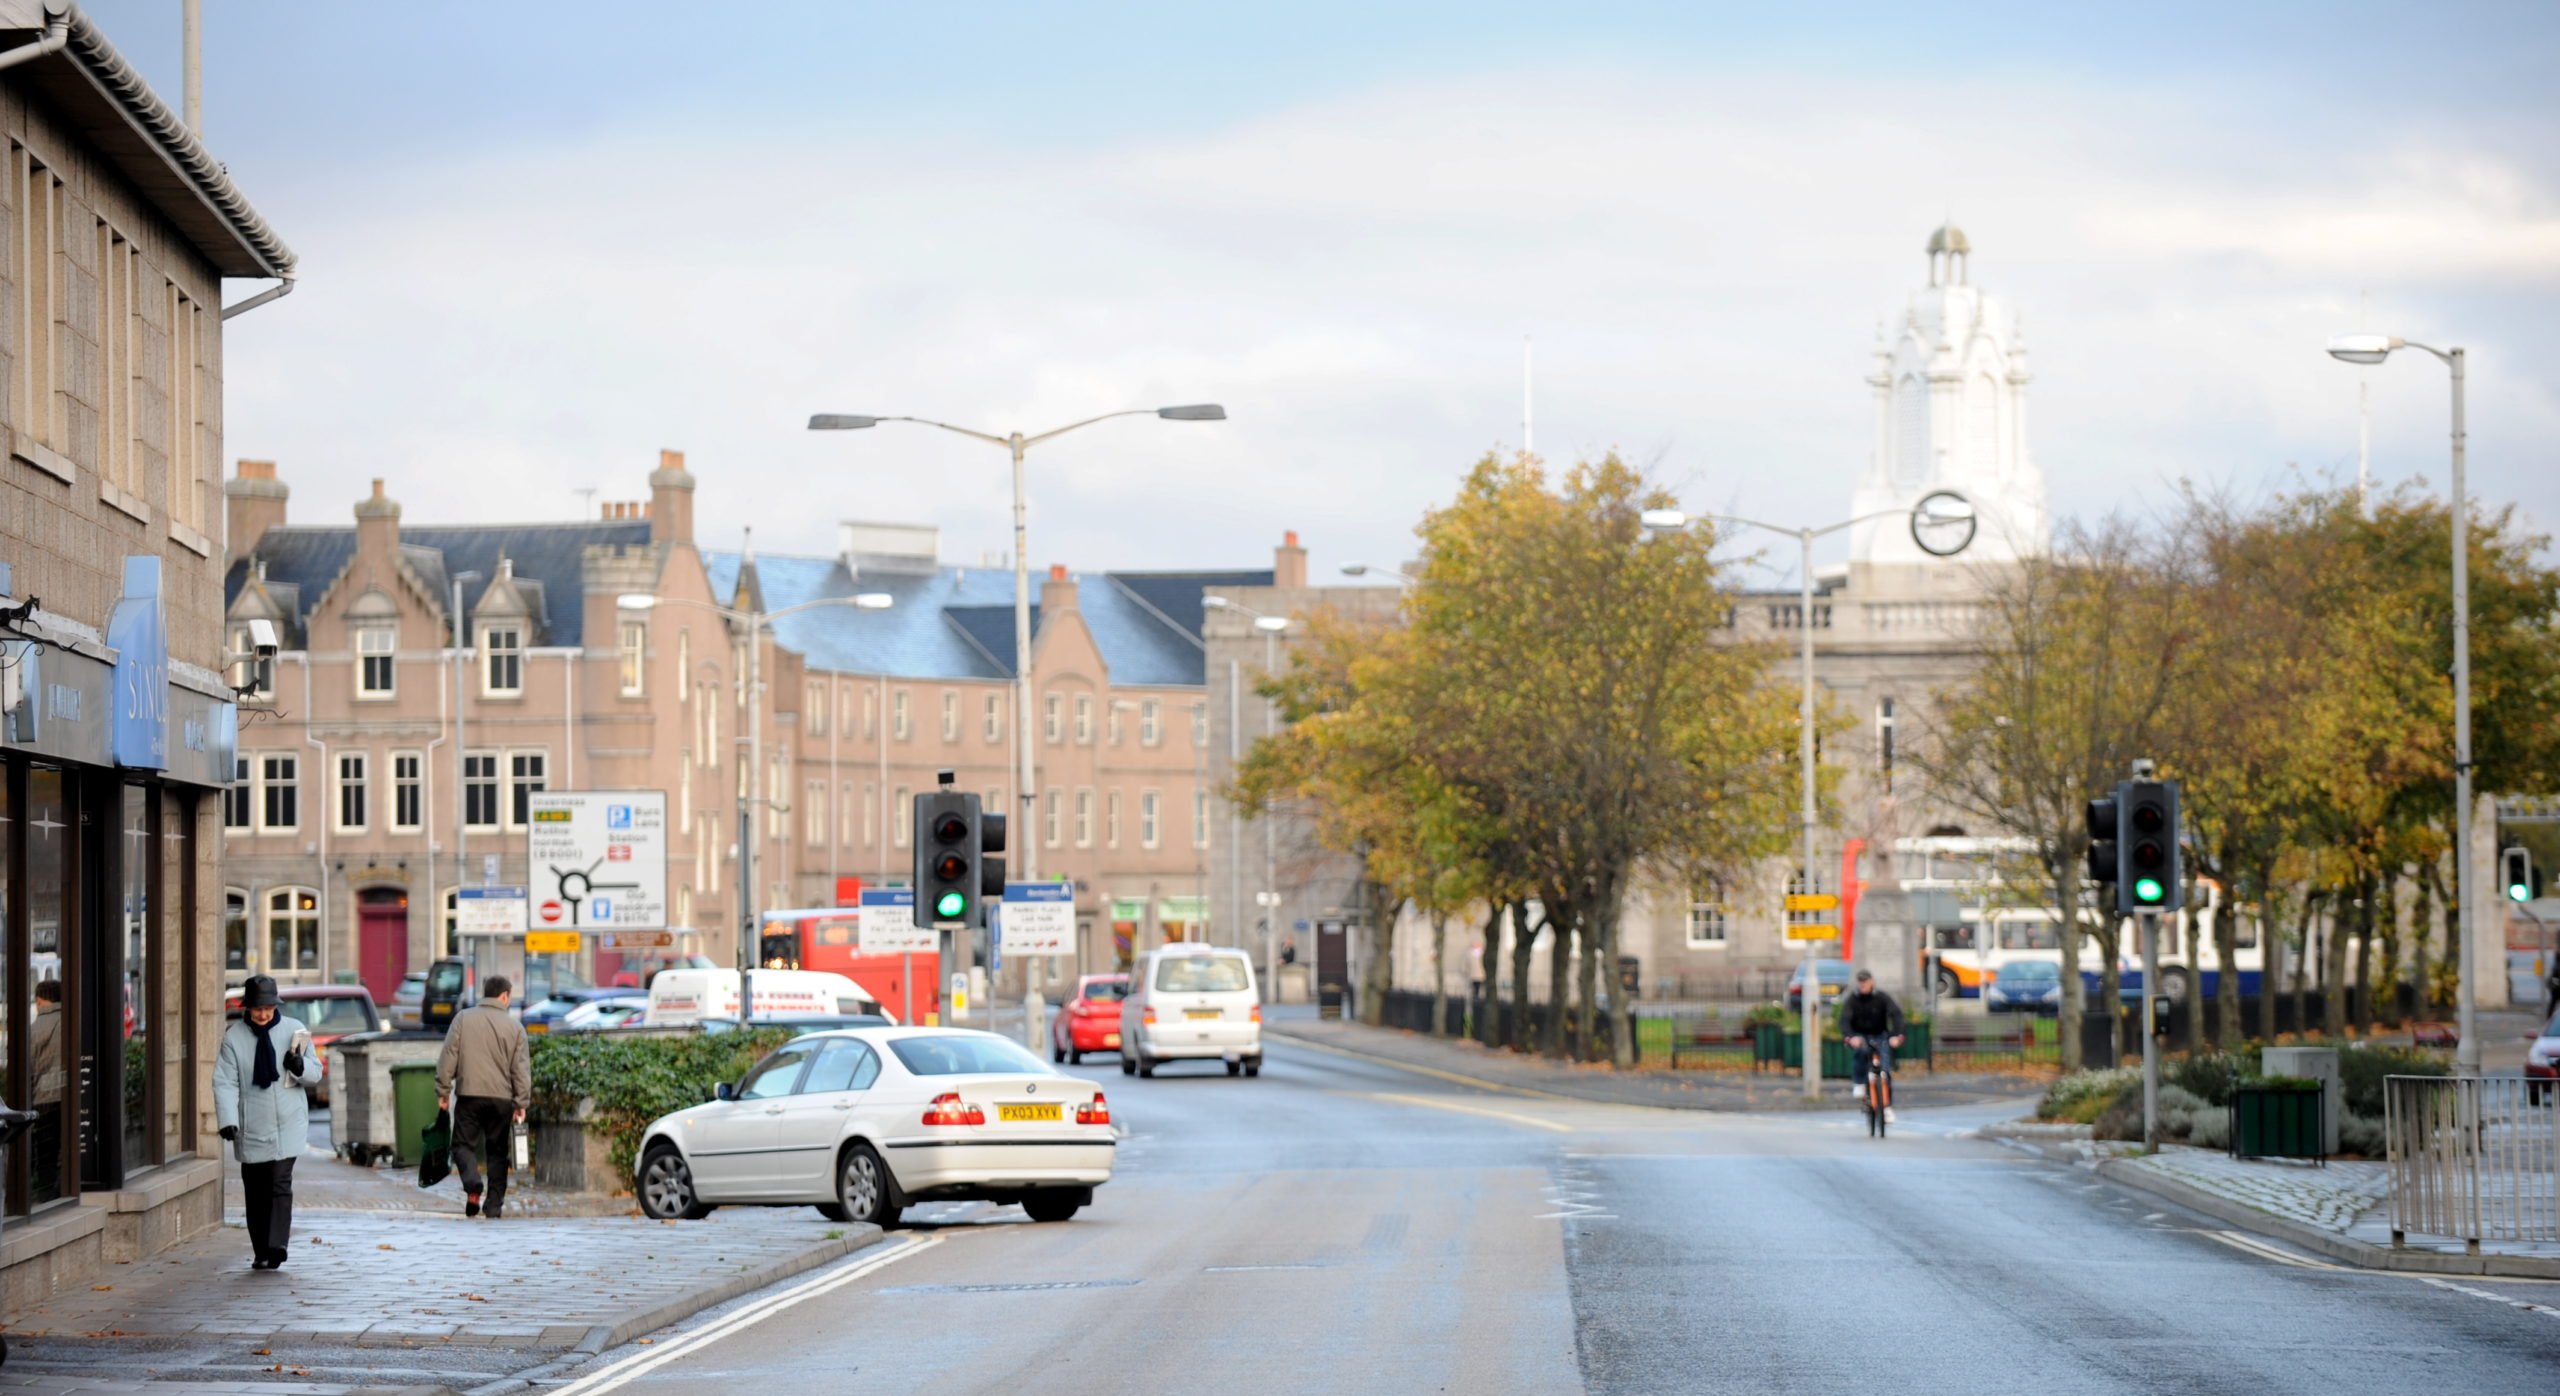 The bicycle repairs will be taking place in Inverurie